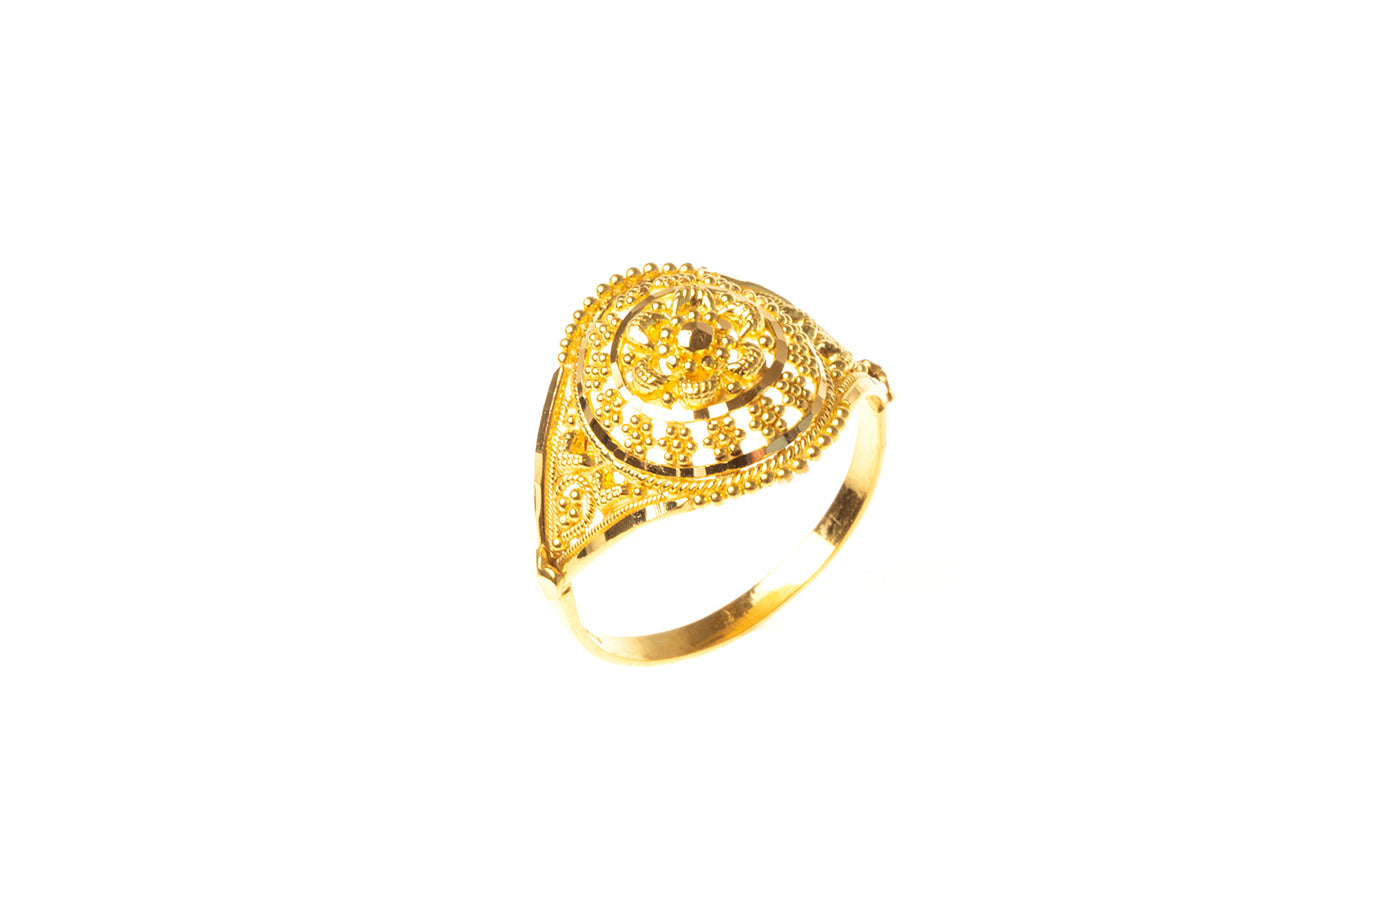 22ct Gold Filigree Dress Ring (2.9g) LR-7825